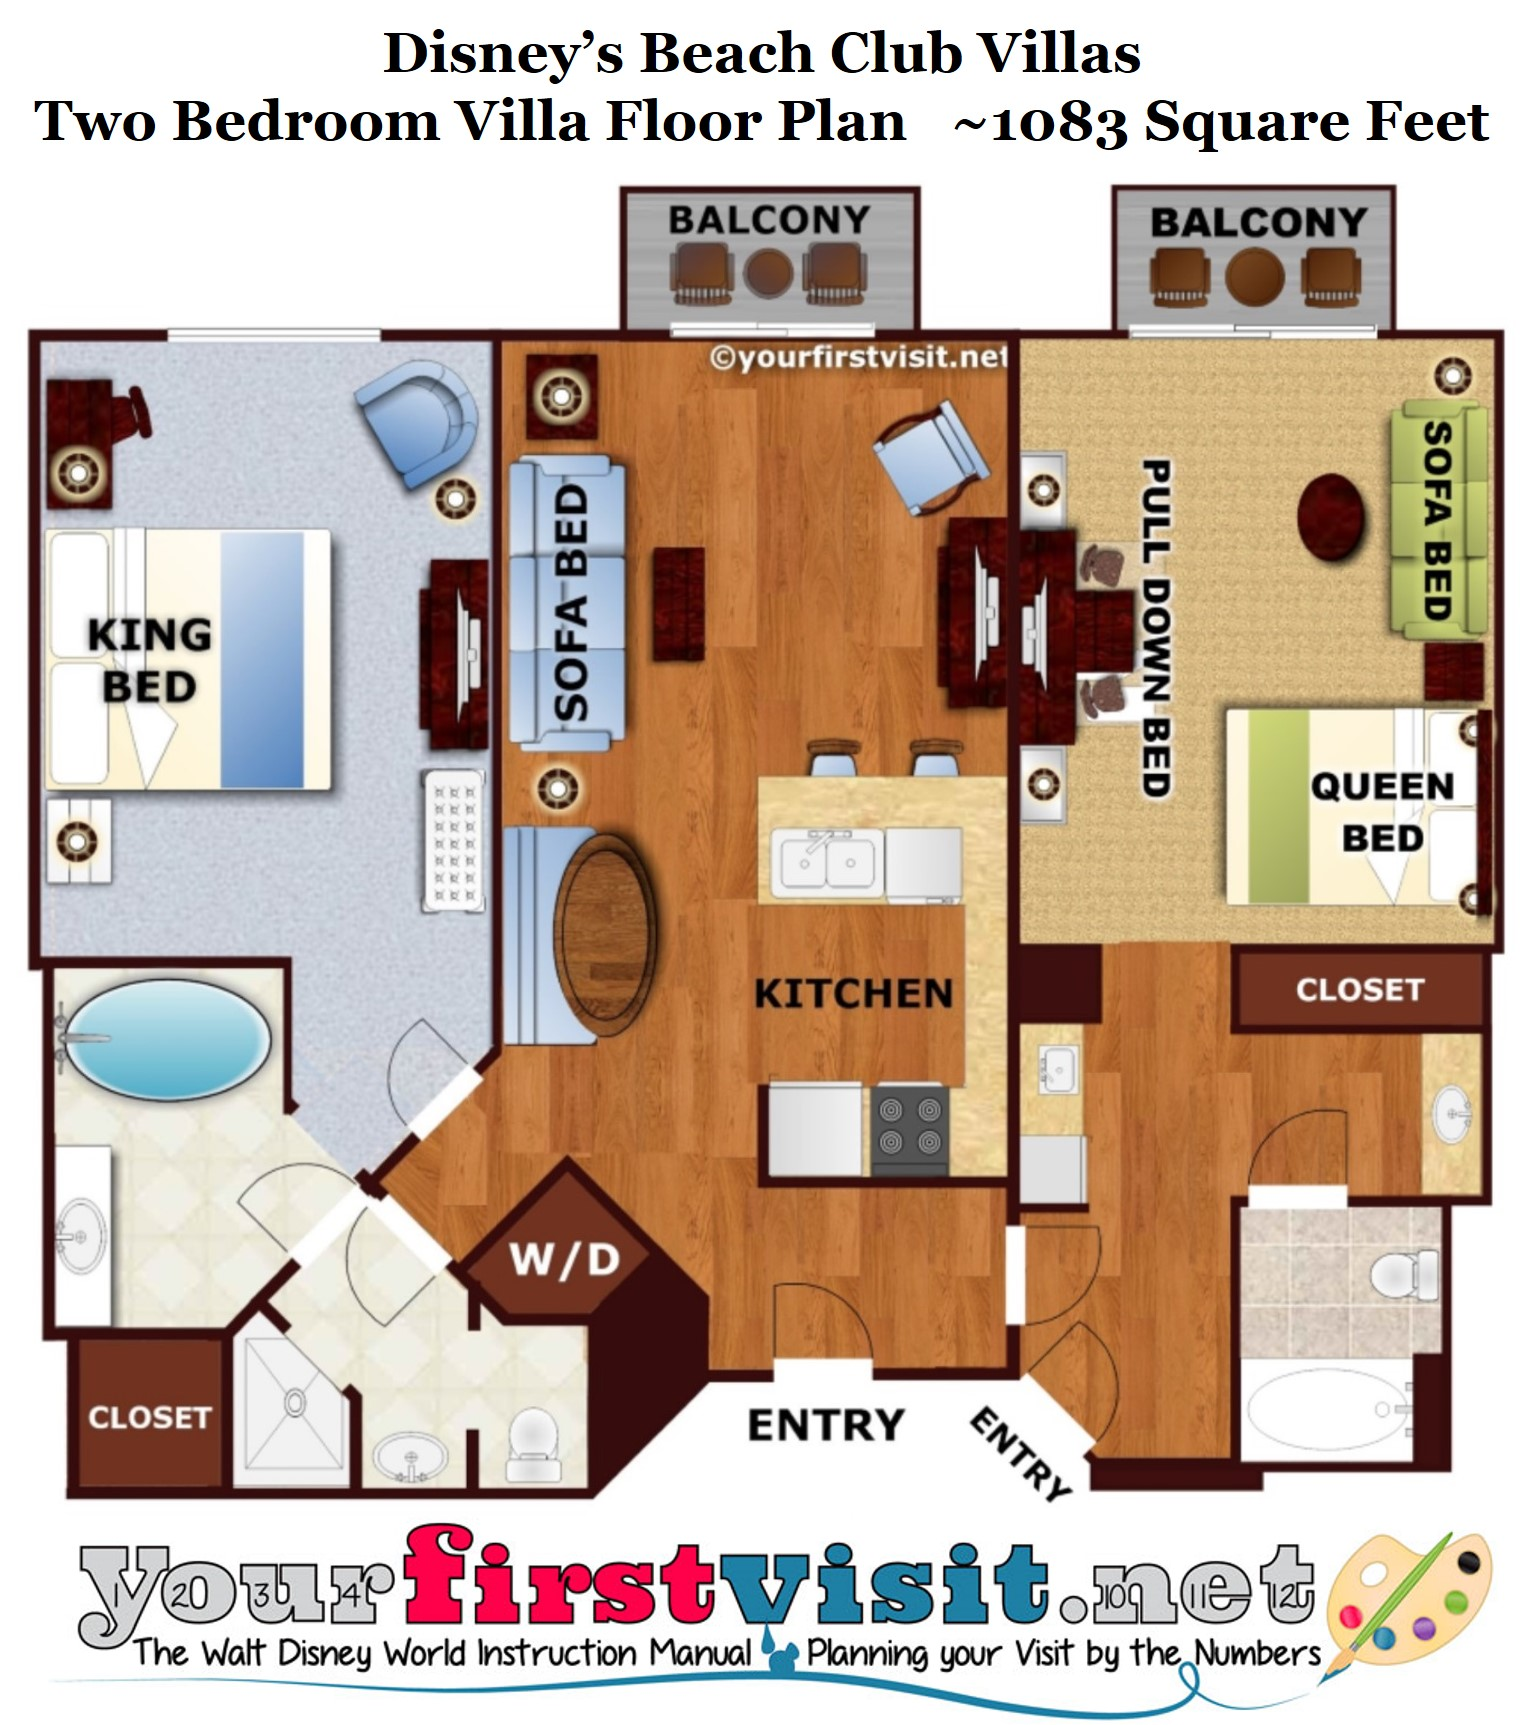 disneys-beach-club-villas-renovated-two-bedroom-villa-floor-plan-from-yourfirstvisit-net